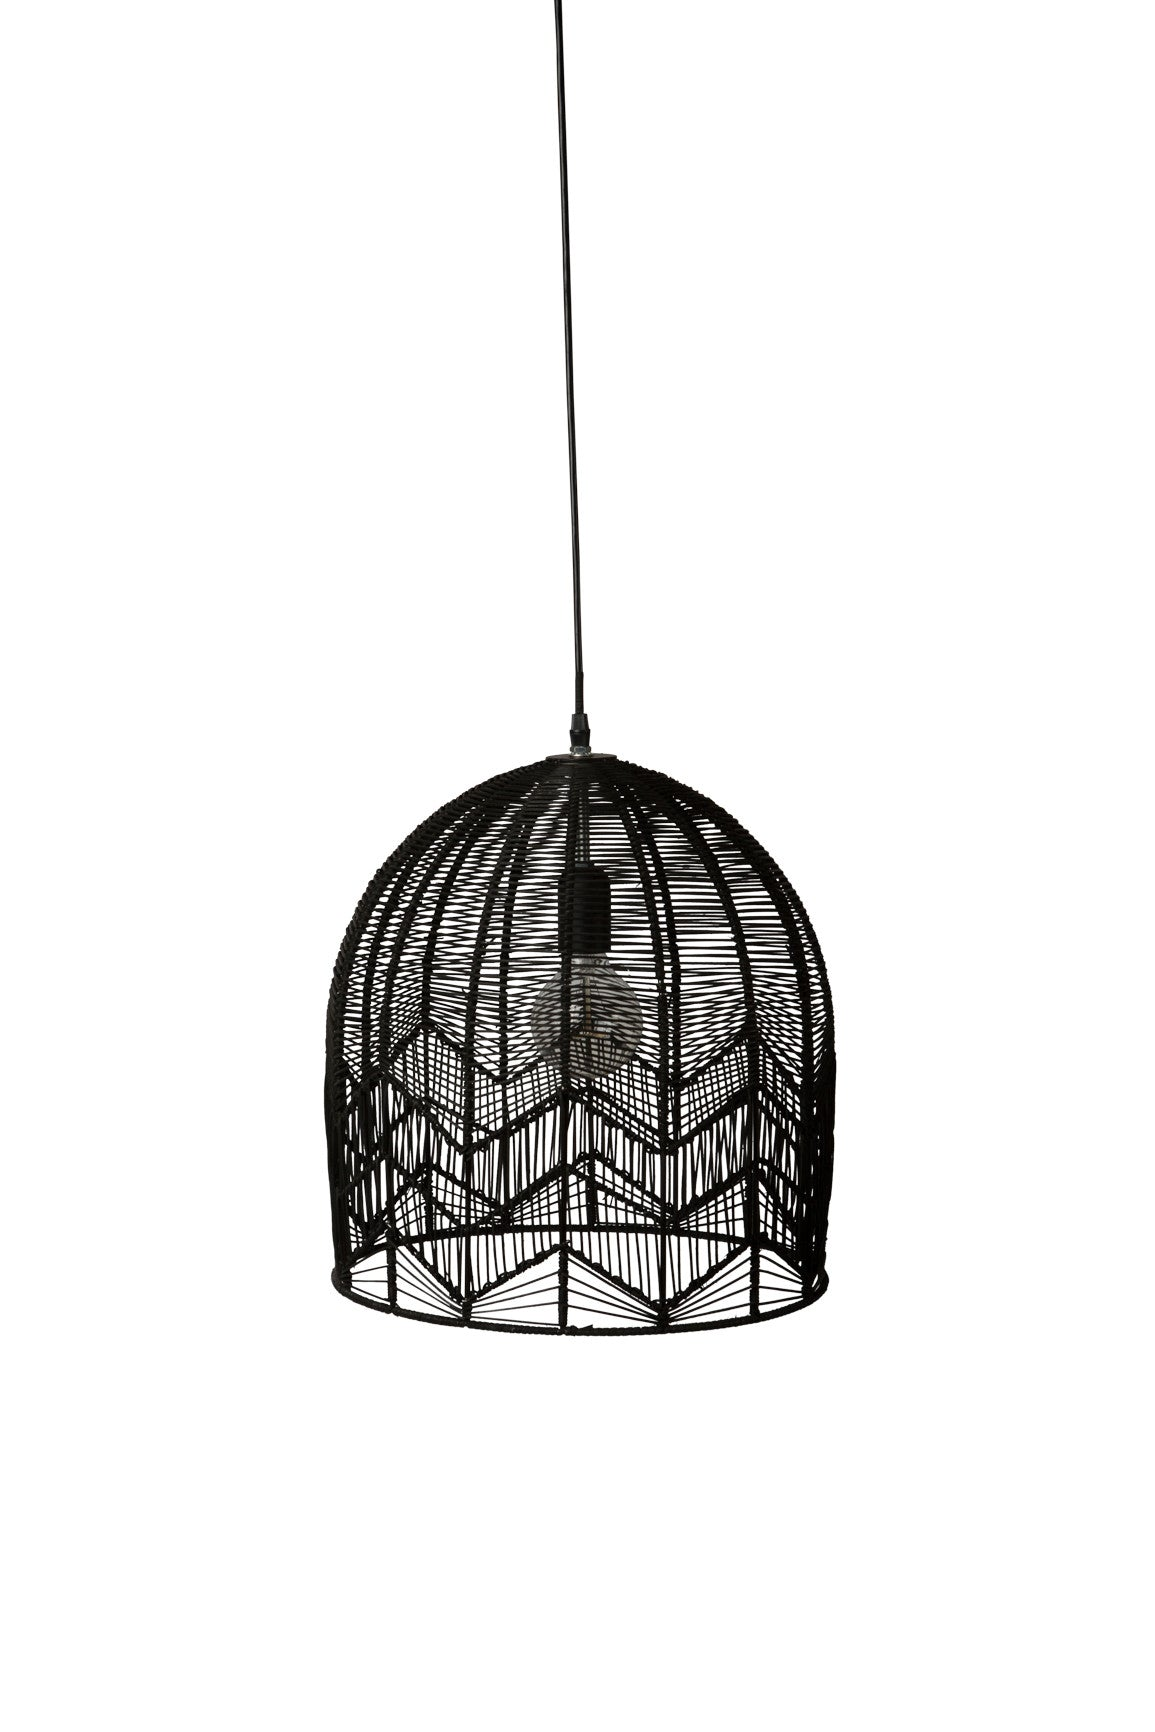 LACE RATTAN PENDANT - BLACK - Milly and Eugene